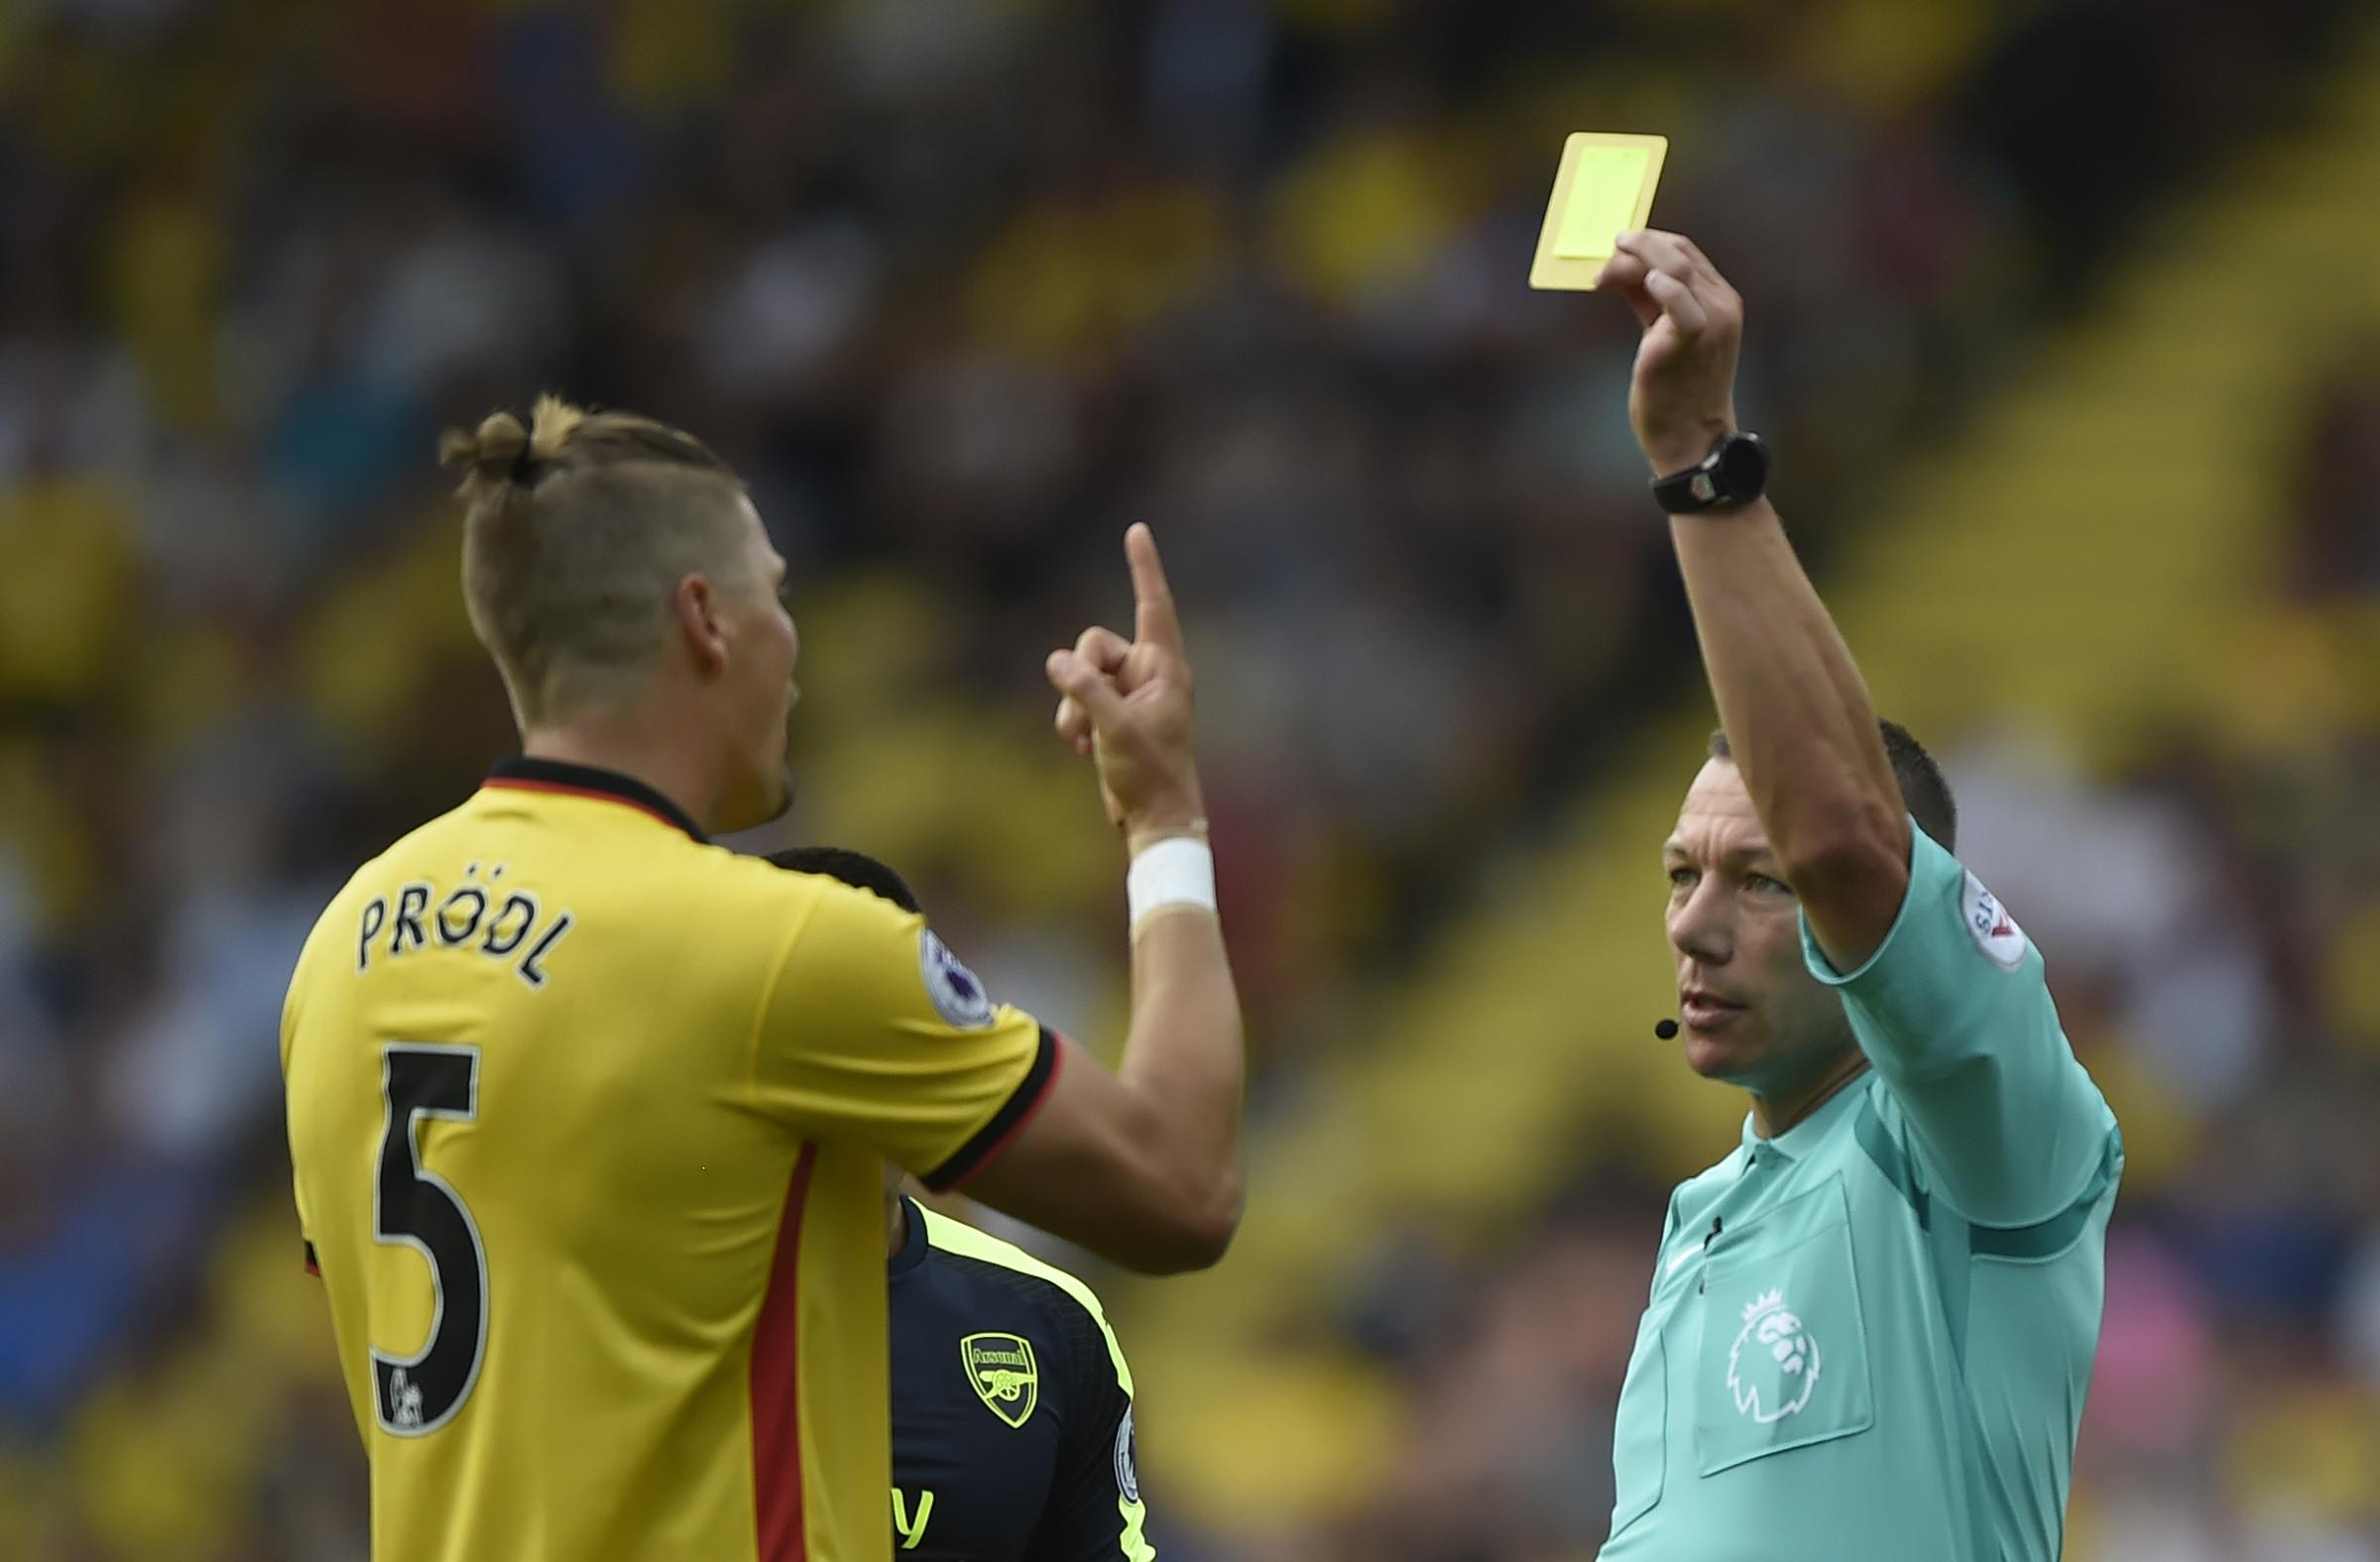 Kevin Friend has not refereed at Vicarage Road since 2016. Picture: Action Images